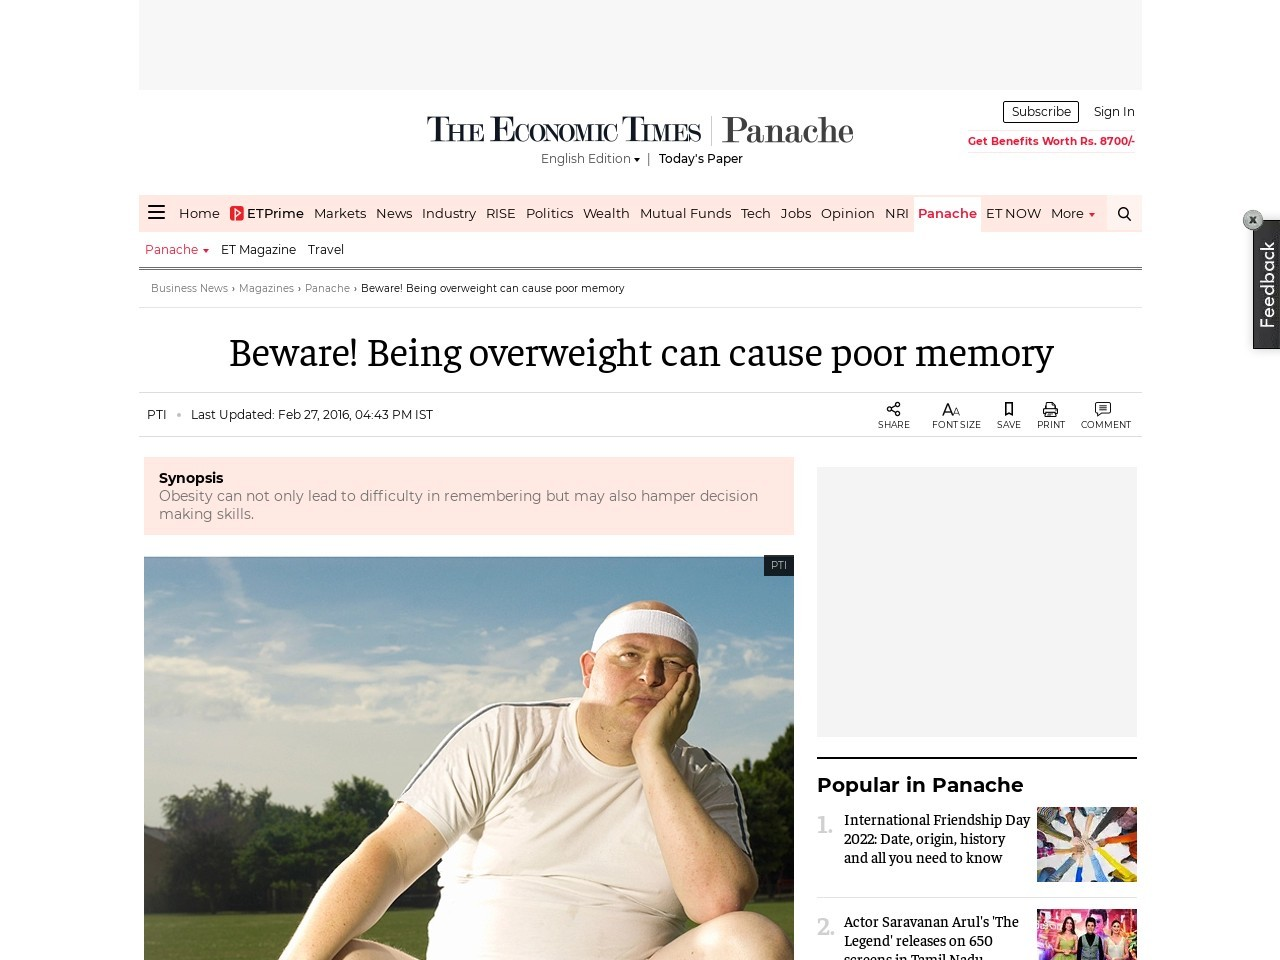 Beware! Being overweight can cause poor memory